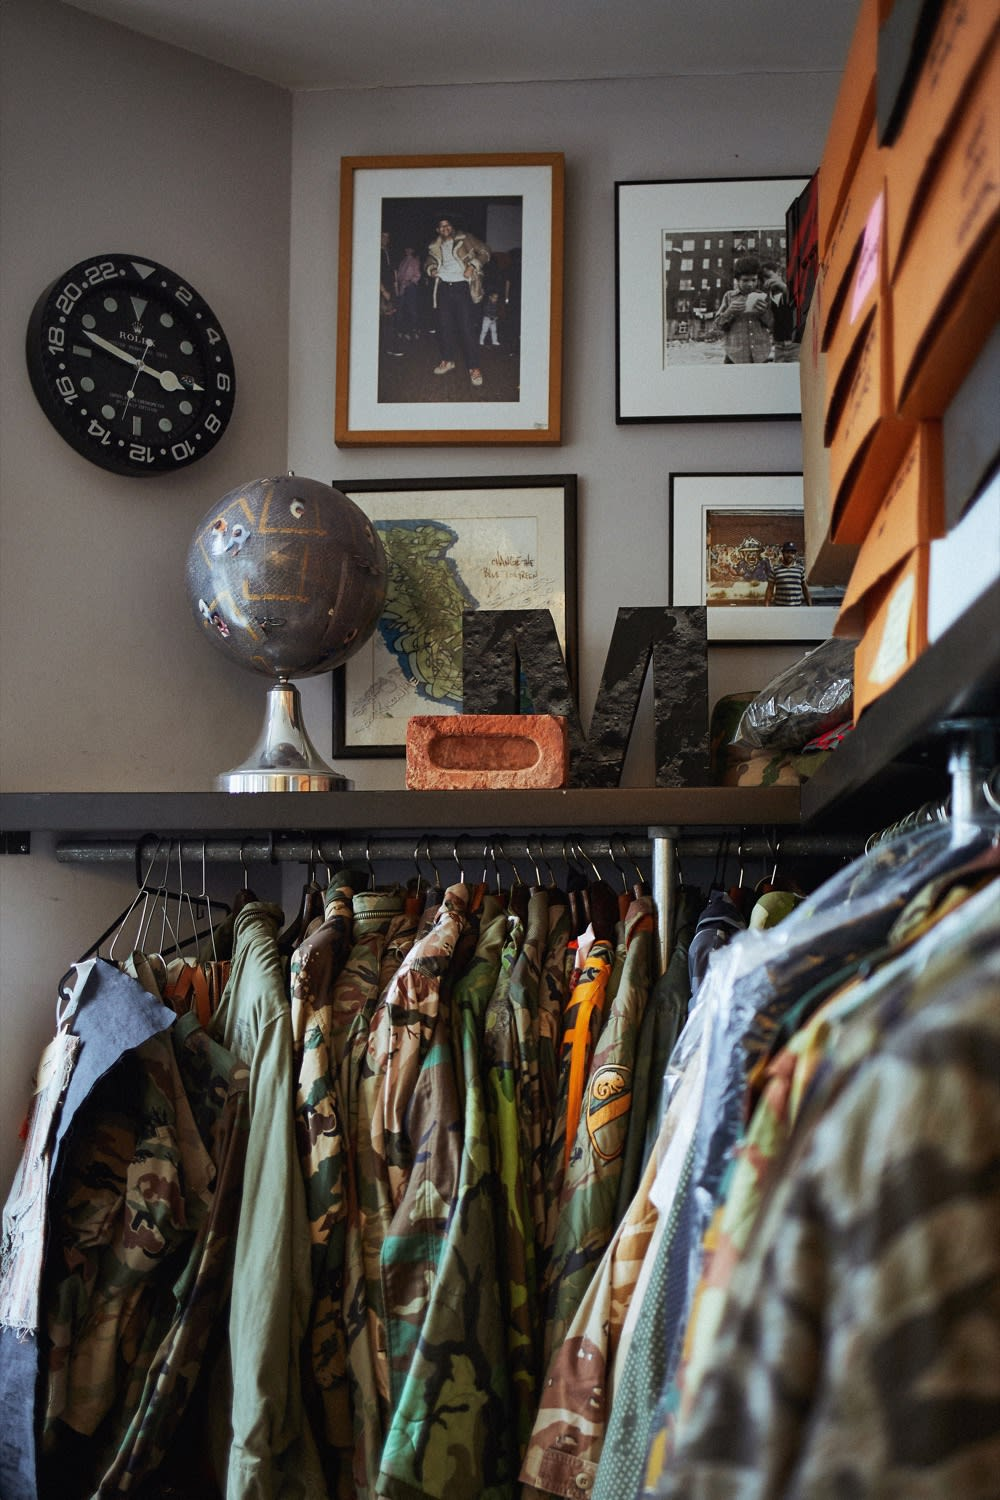 The Maharishi military surplus archive